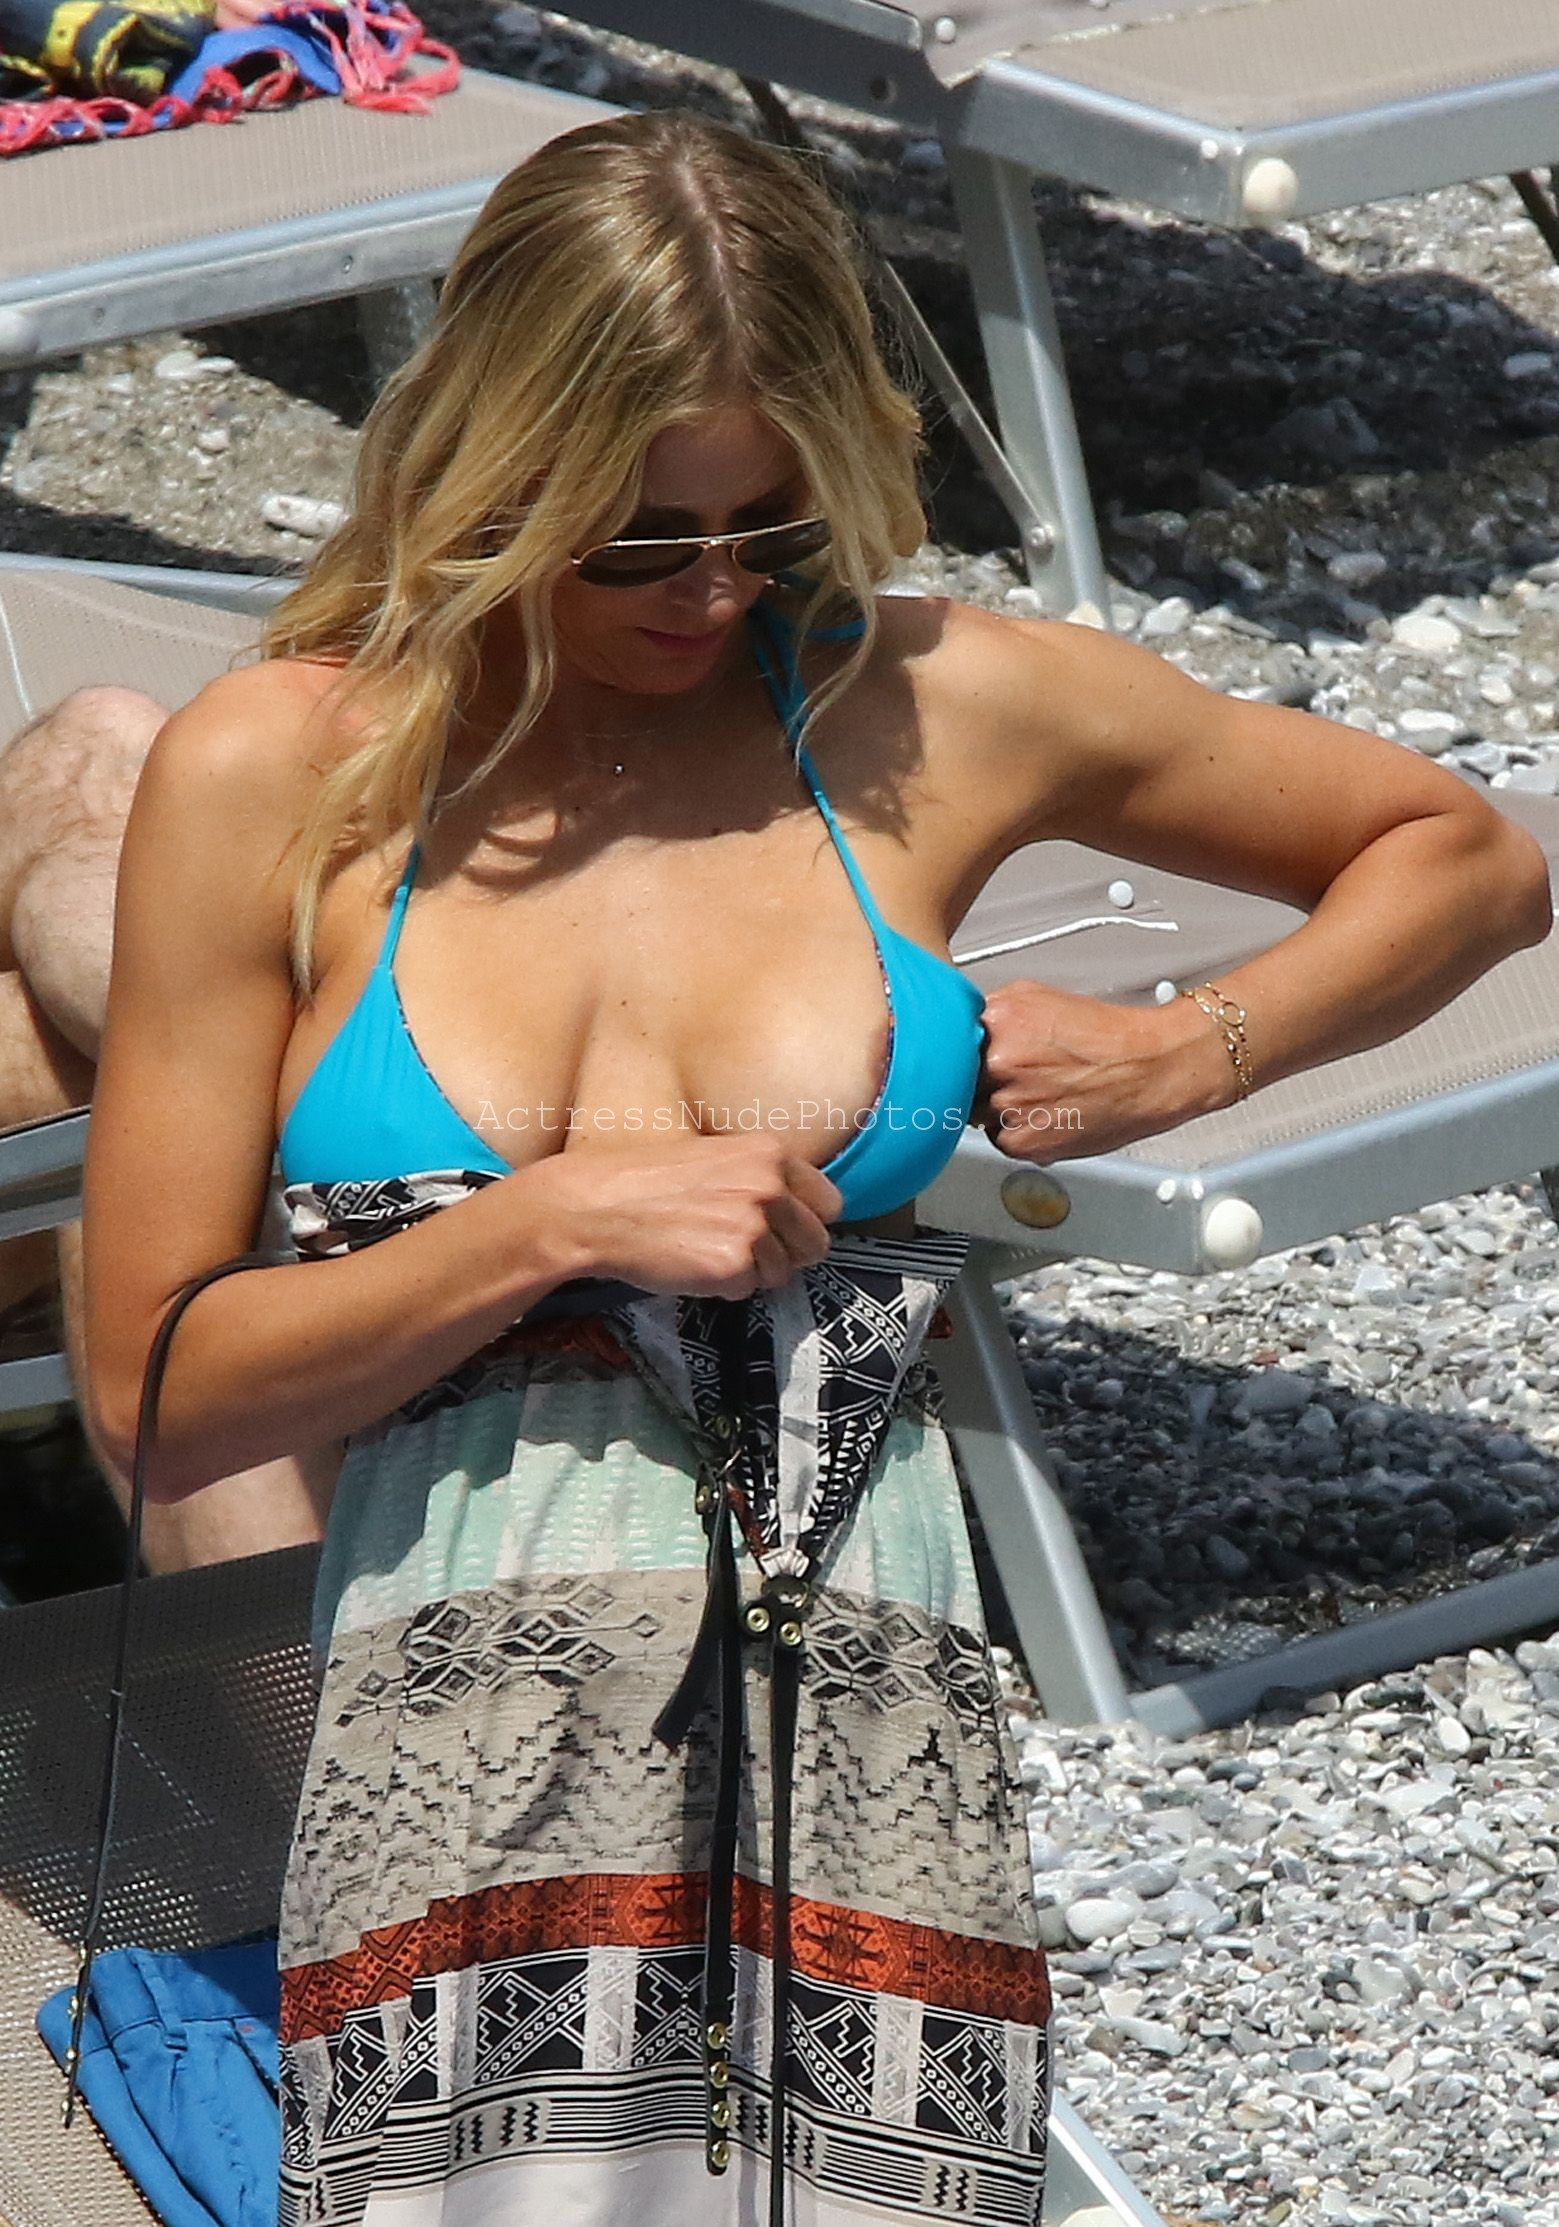 Brittany Nude photo 24